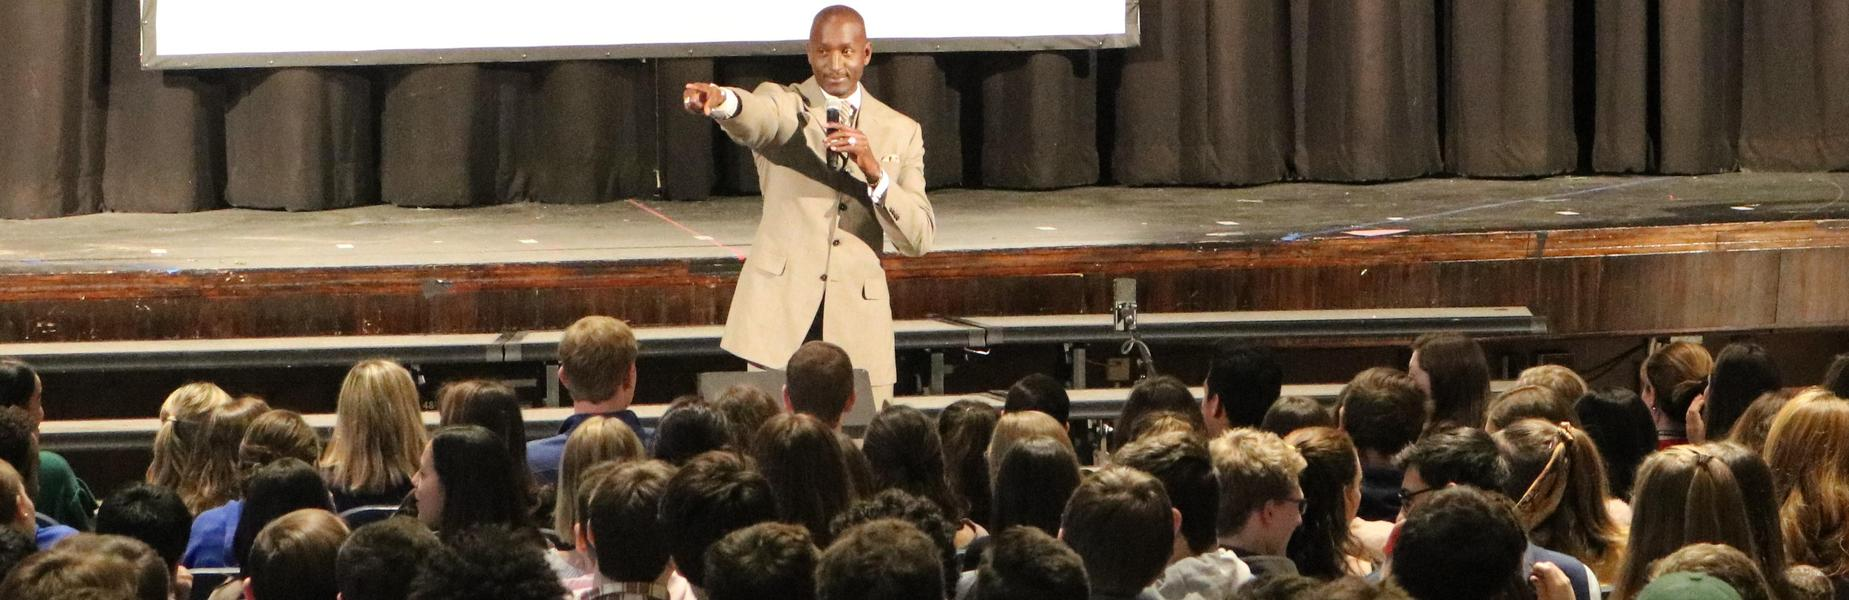 Dr. Randal Pinkett visits WHS on Feb 1 for an inspiring Black History Month assembly.